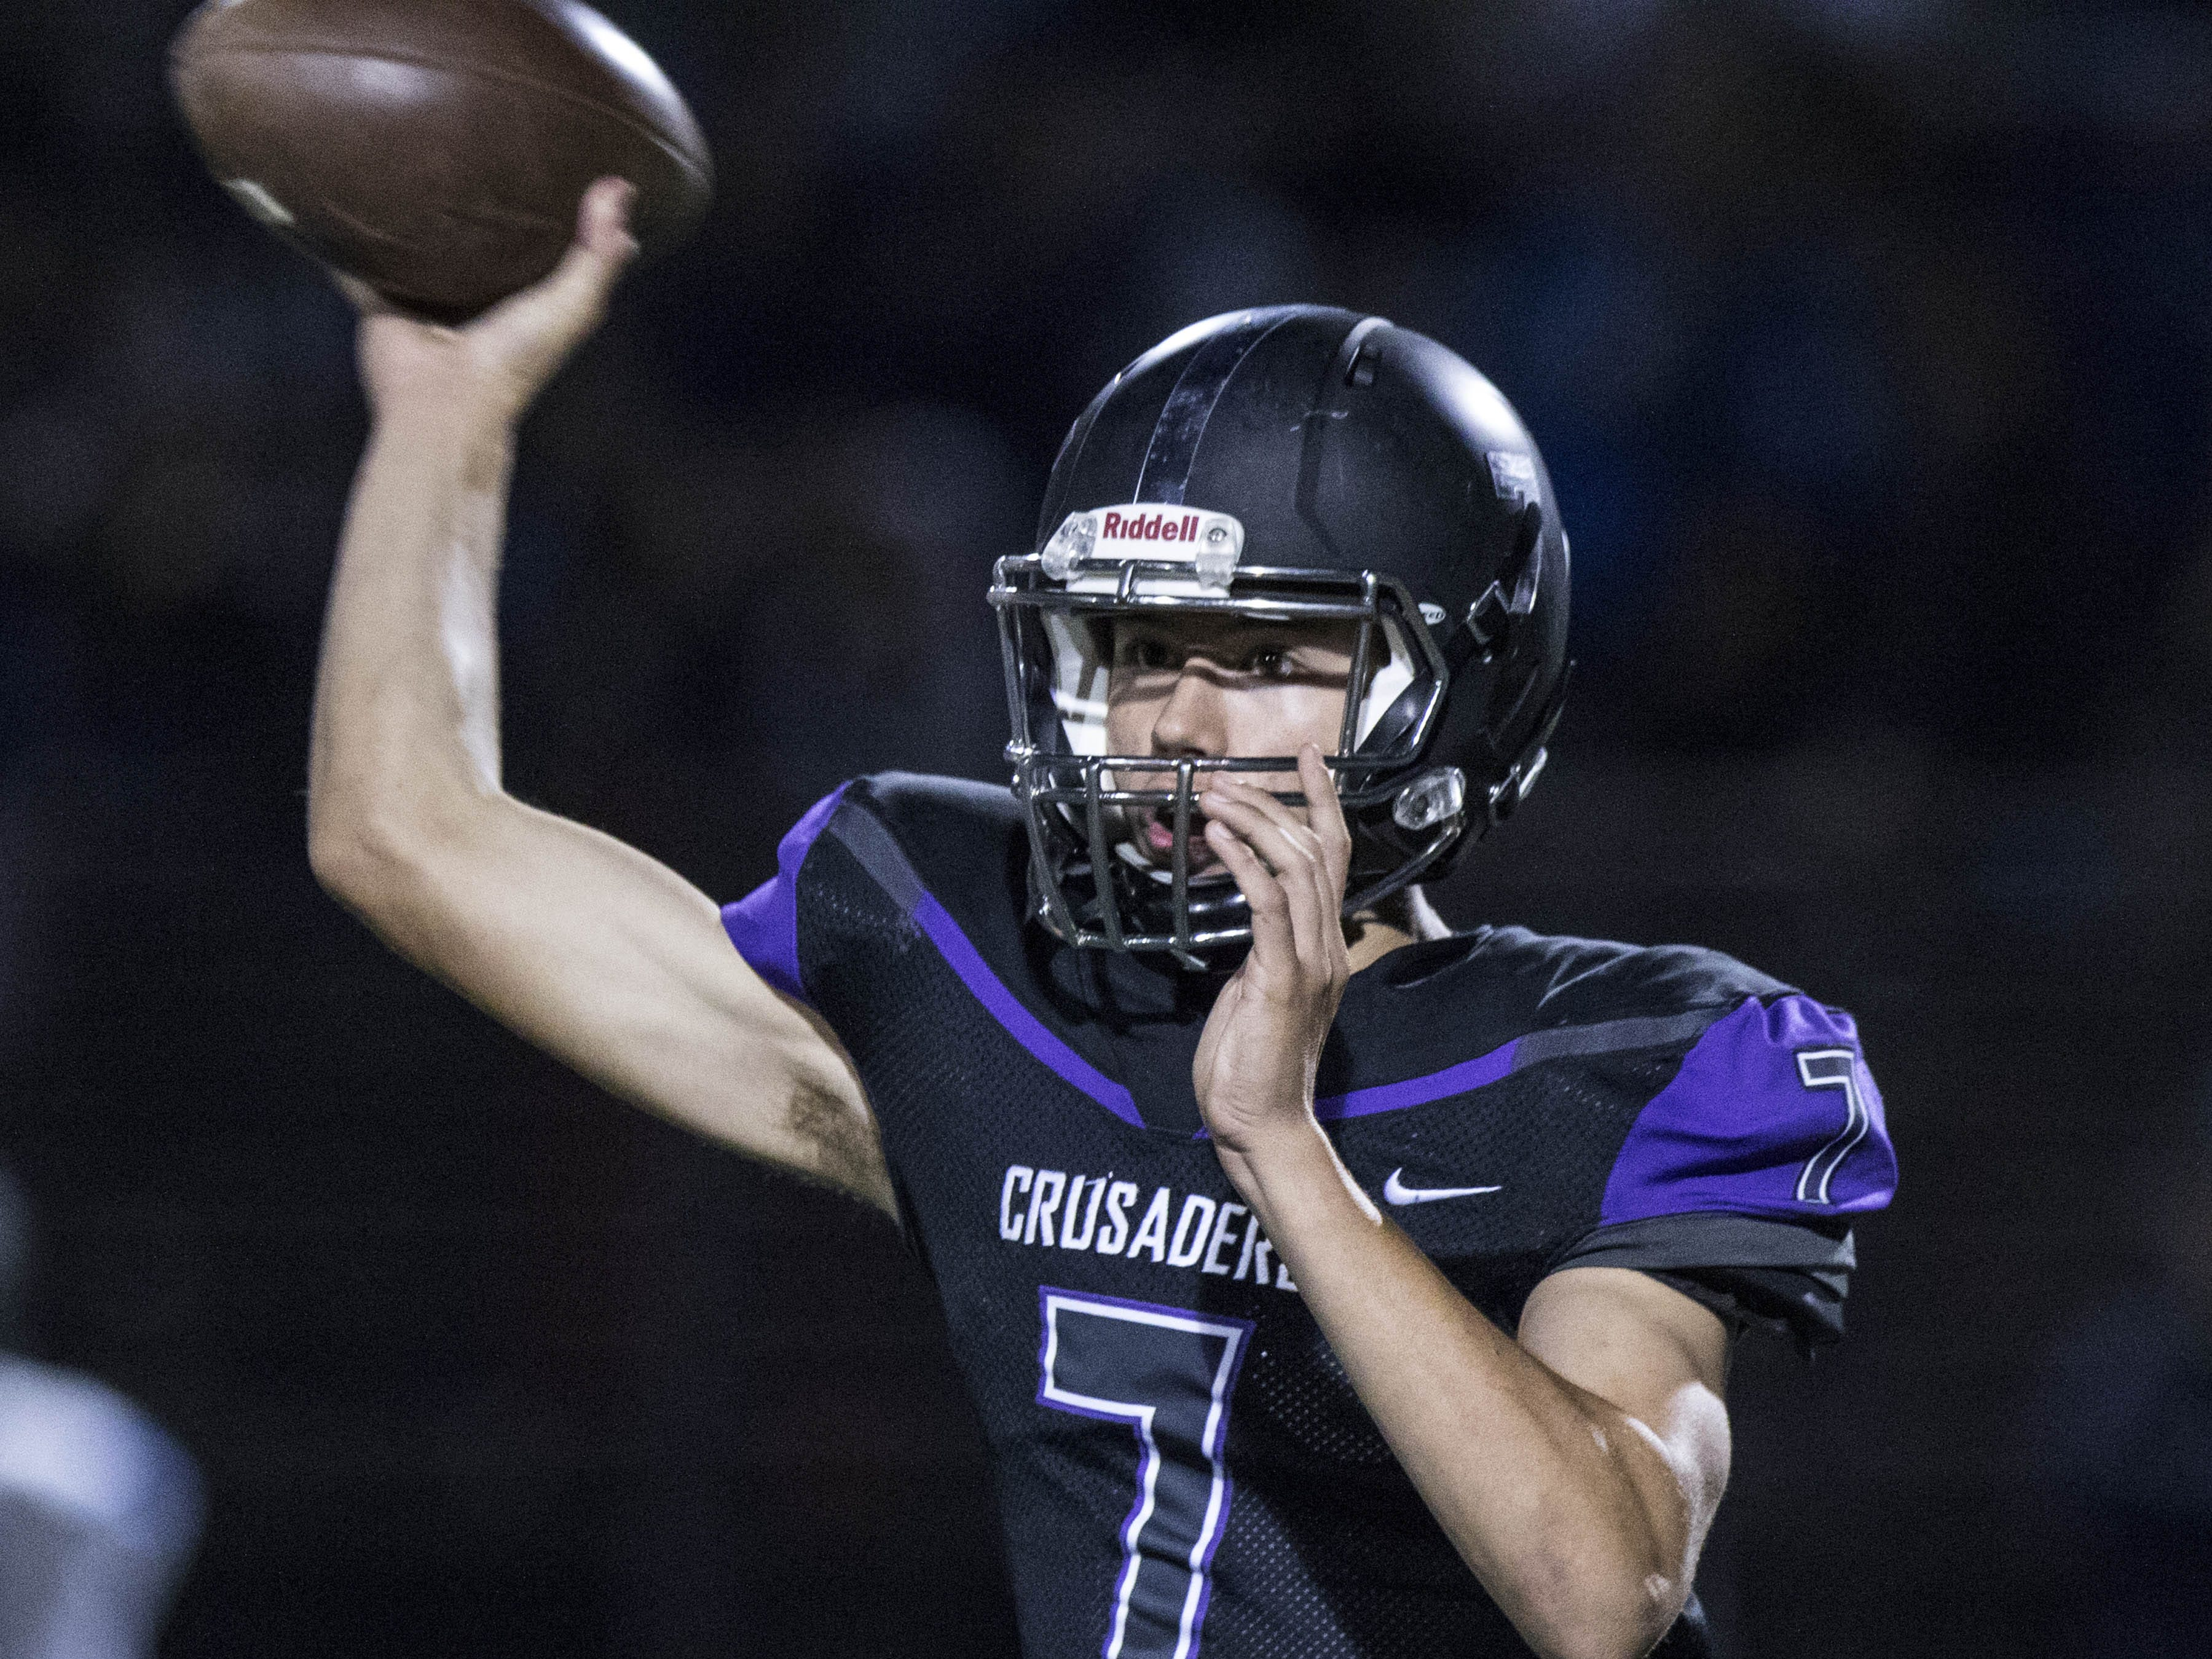 Northwest Christian's Jonathan Metzger throws against Valley Christian's defense during their game at North Canyon High School in Phoenix  Friday, Nov.17, 2018. #azhsfb